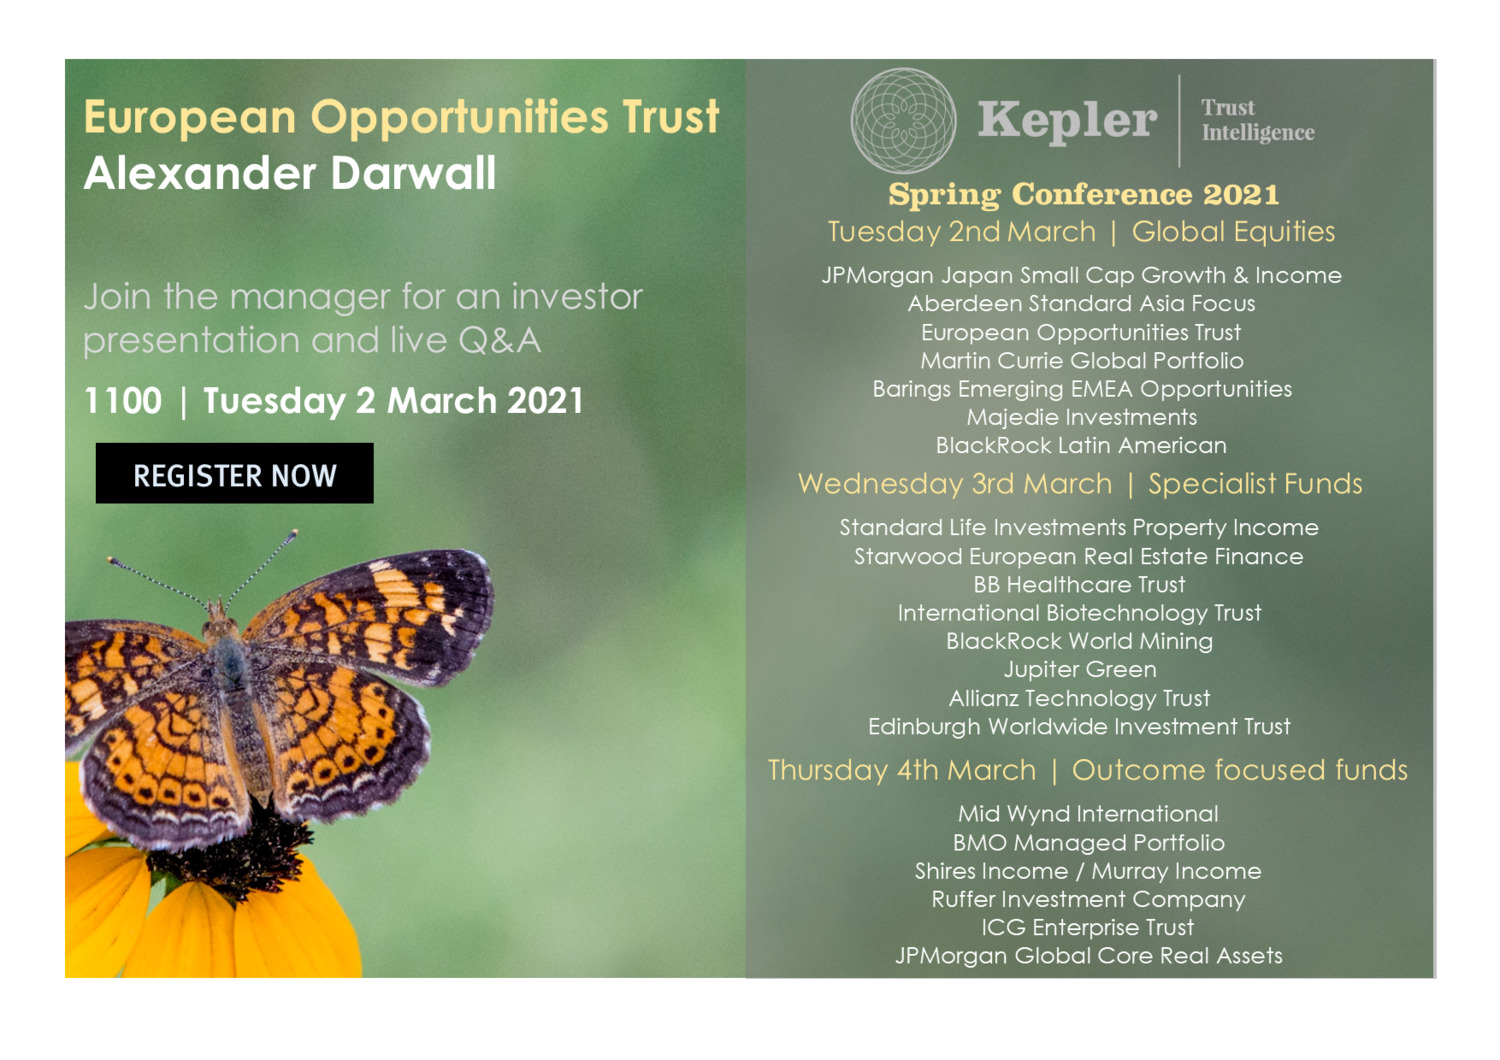 KTI Spring Conference - European Opportunities